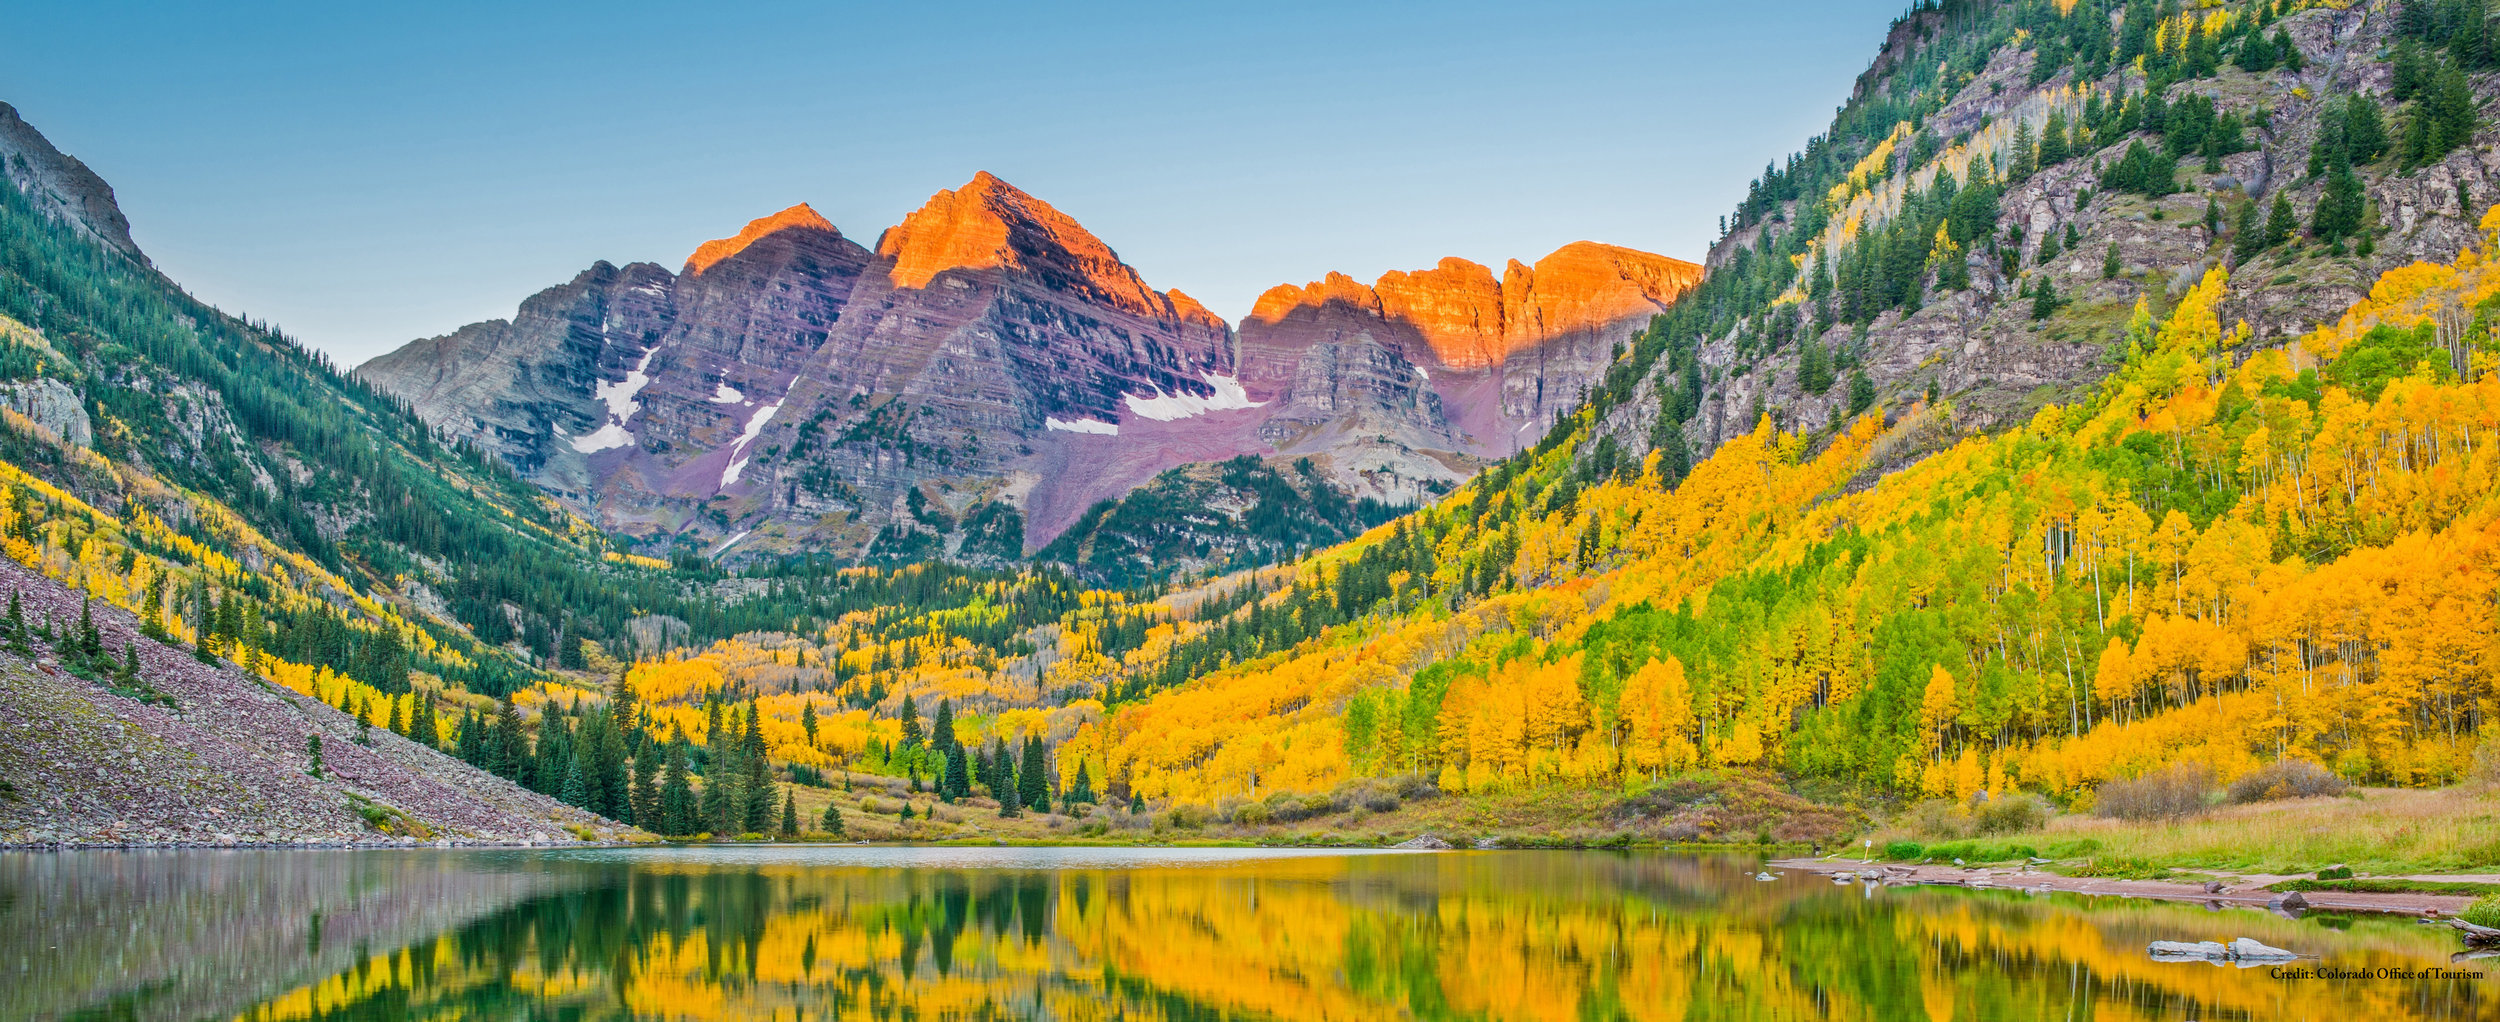 Maroon-Bells-C2-Photography-credit.jpg